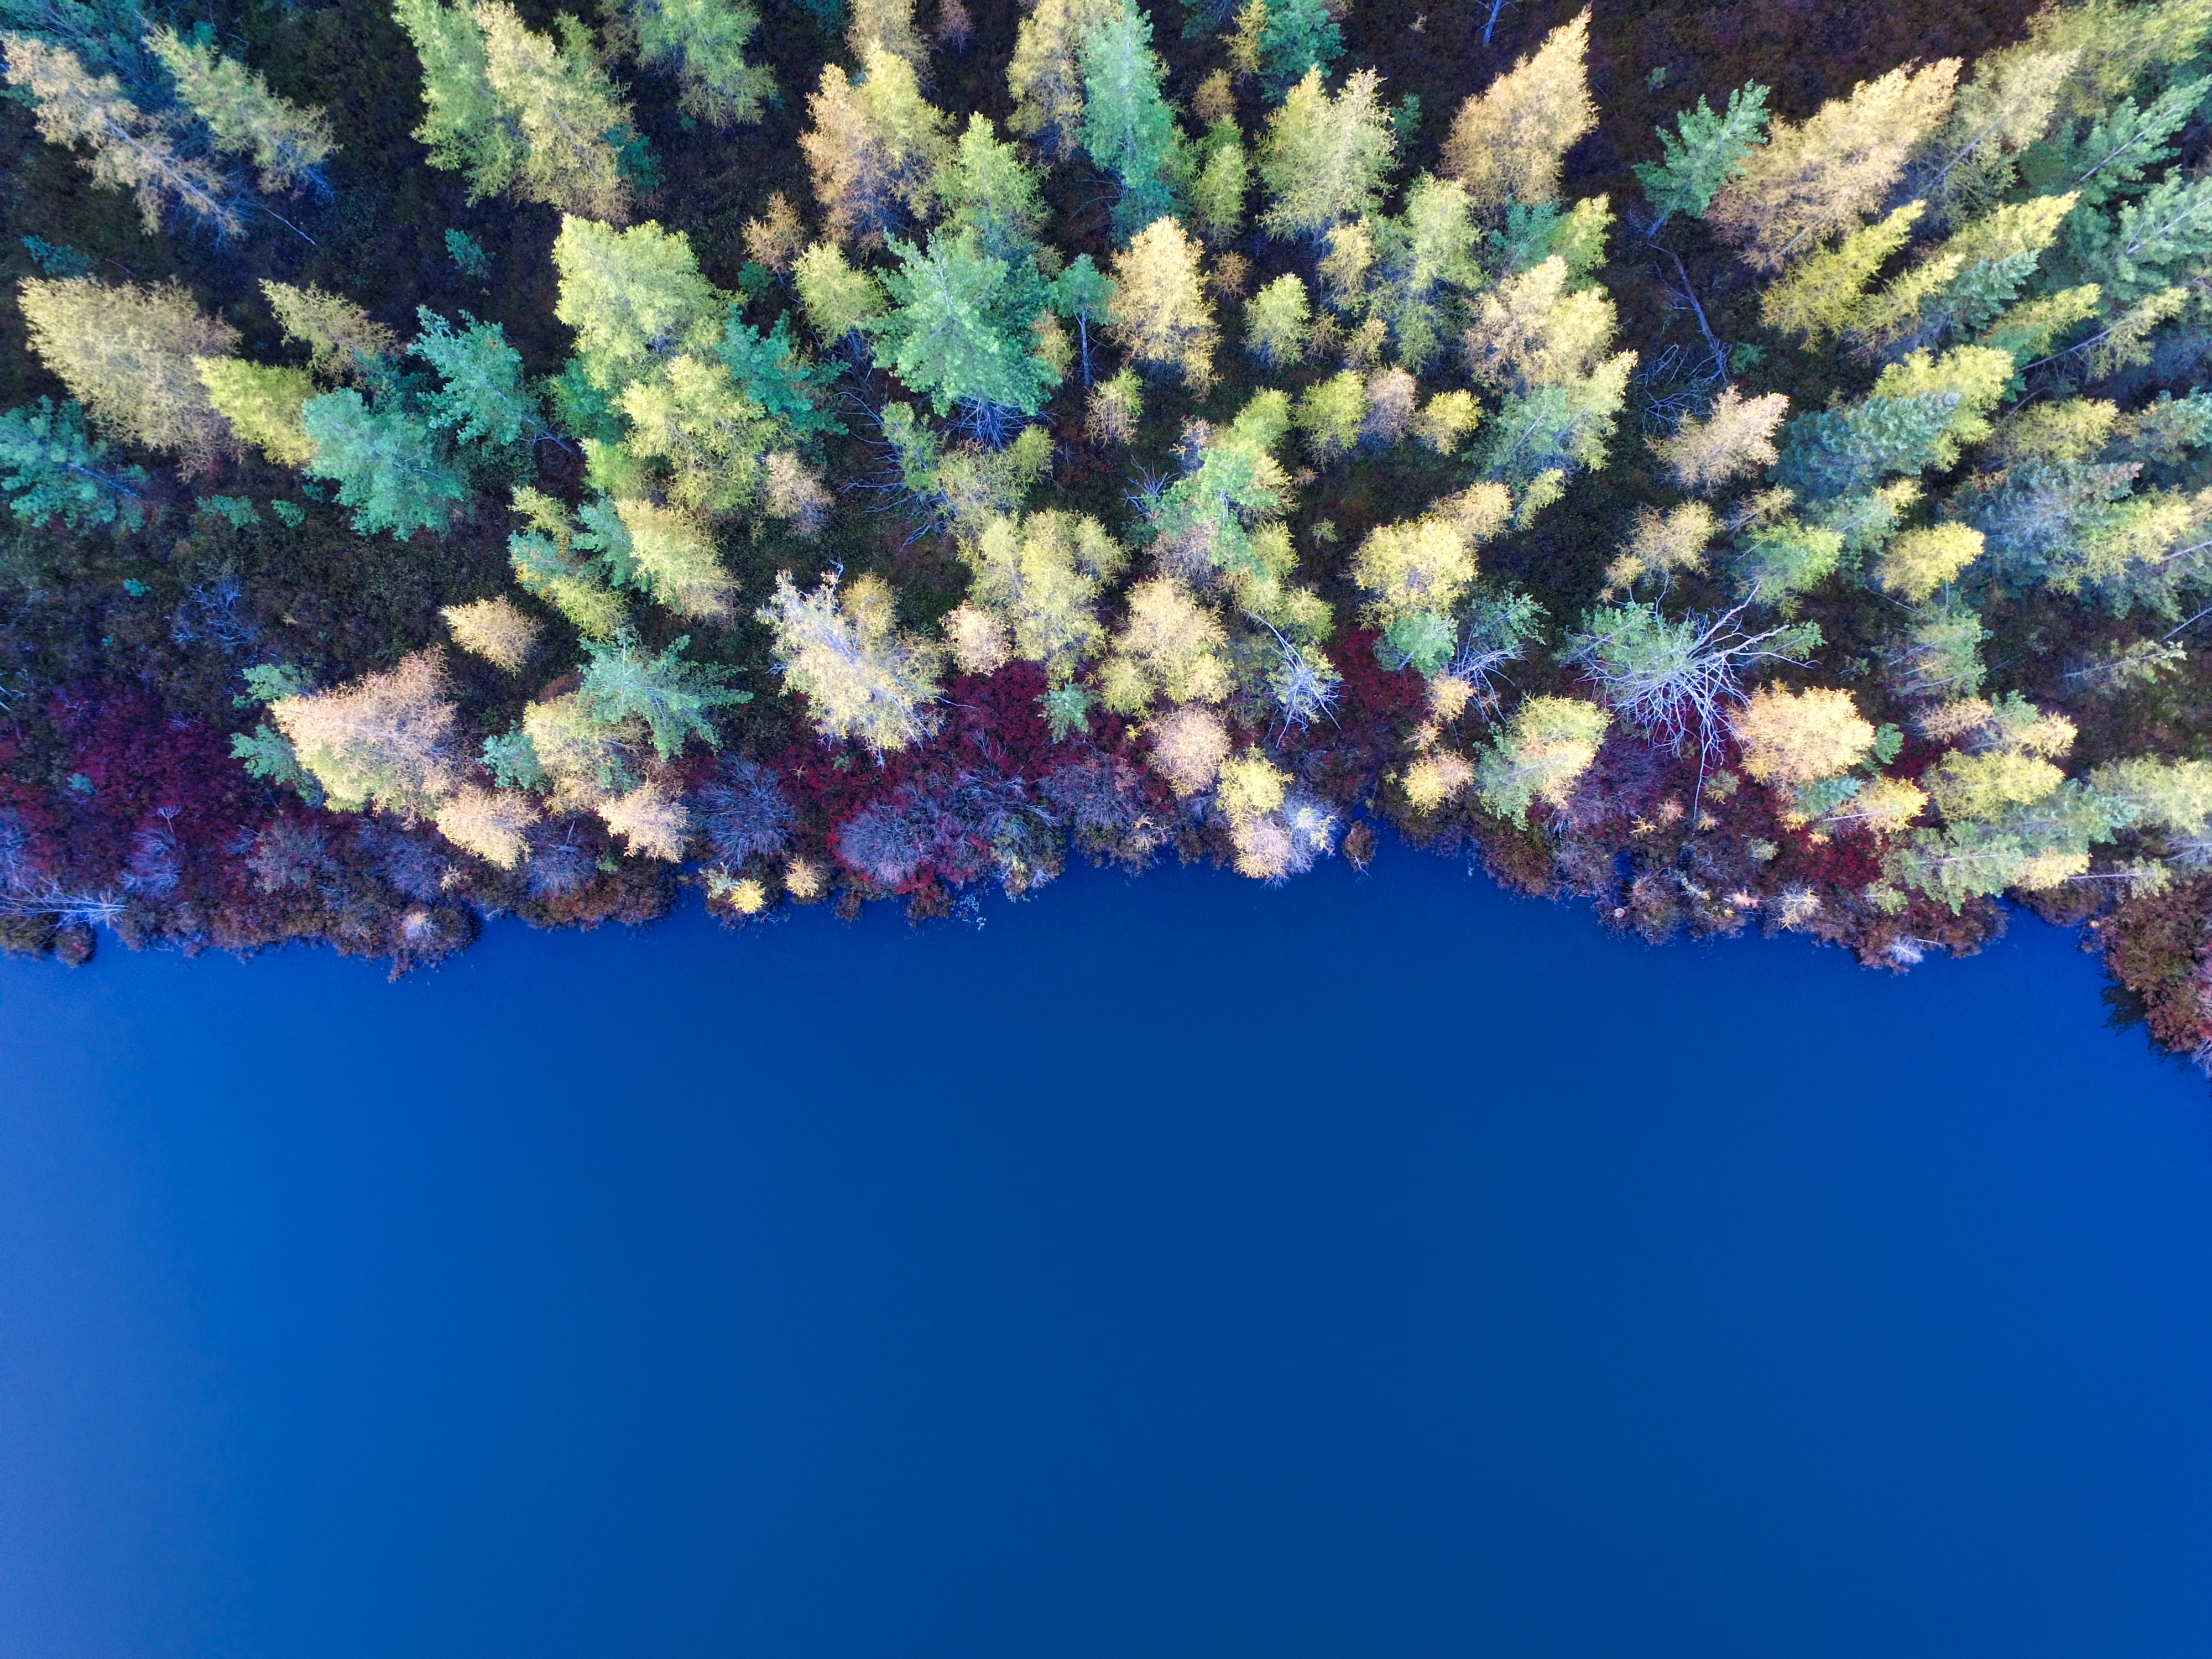 A drone view of a forest and blue lake in Prudenville, Michigan, United States